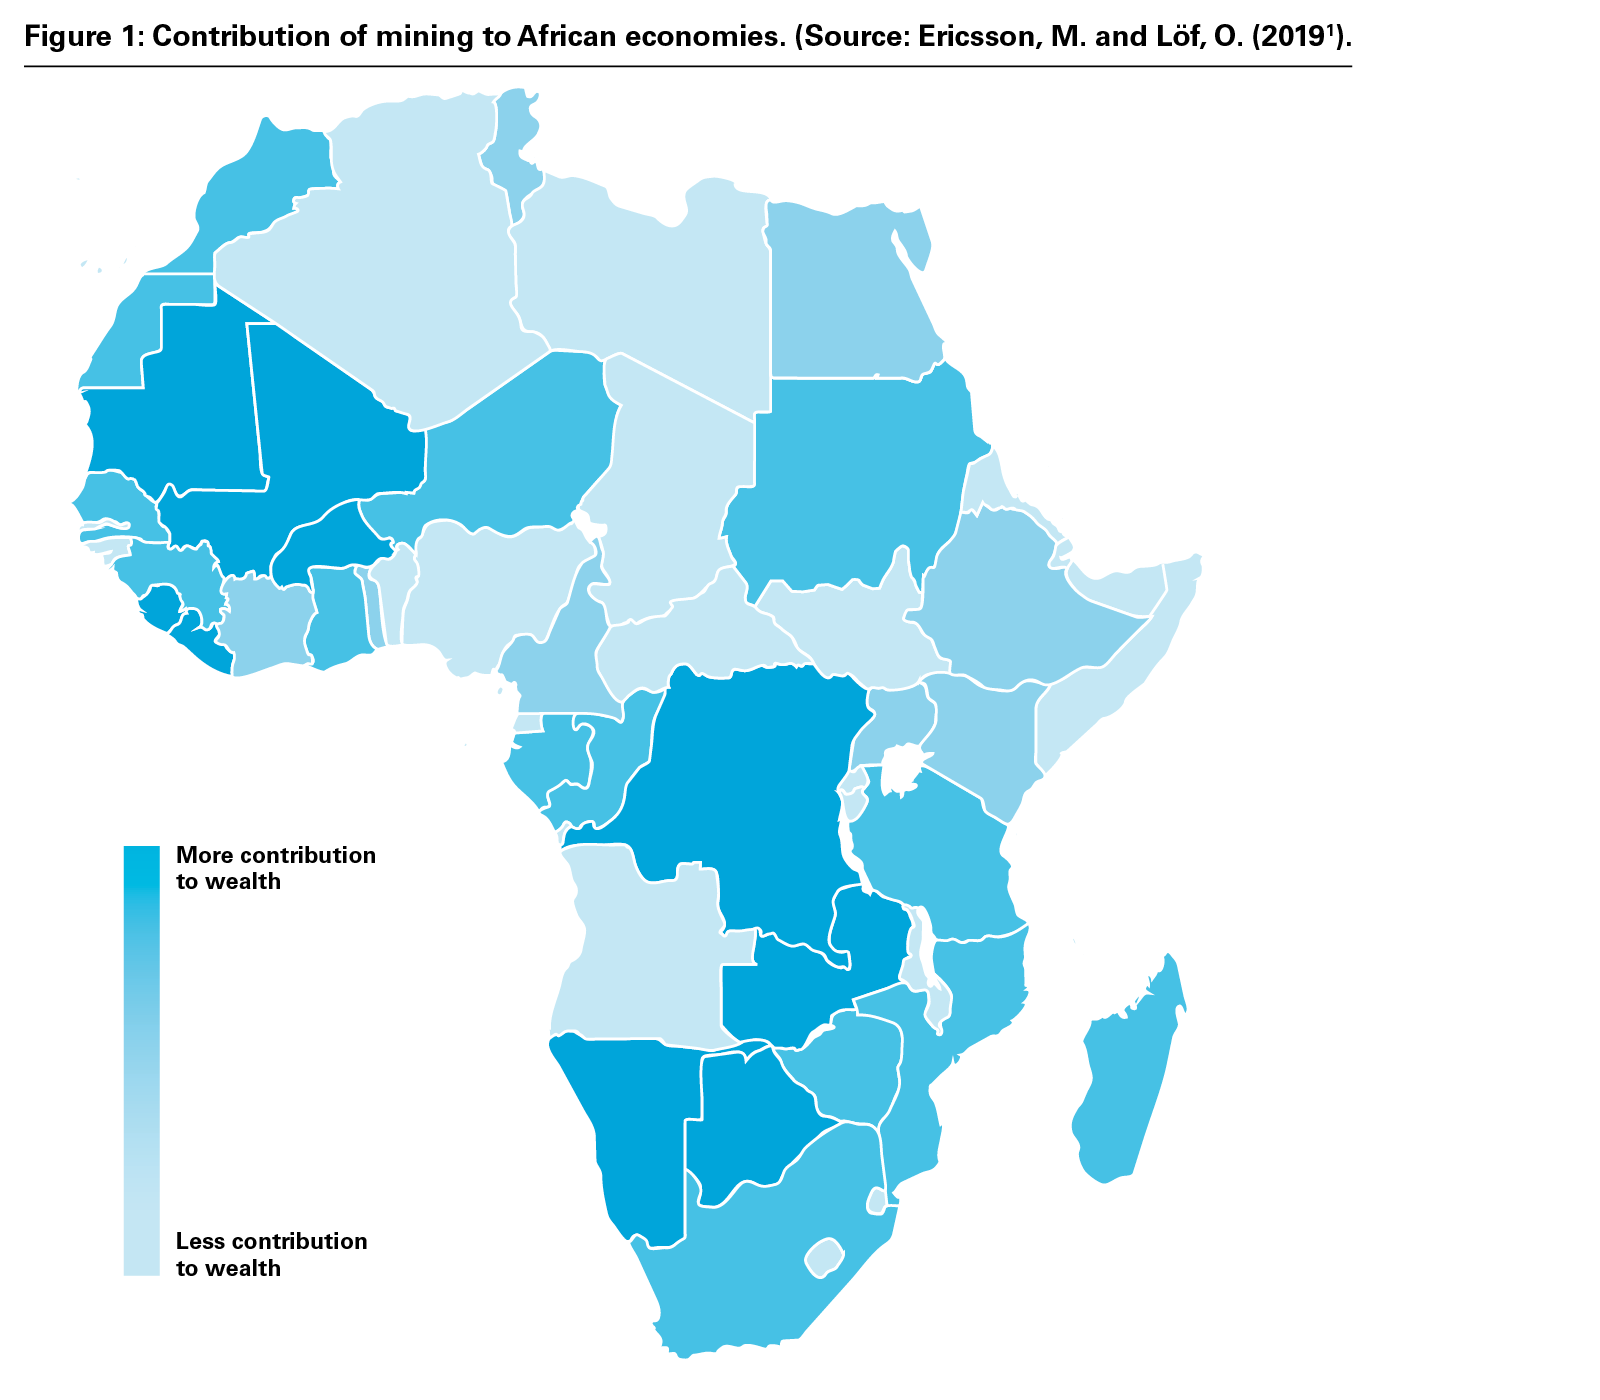 Figure 1: Contribution of mining to African economies. (Source: Ericsson, M. and Löf, O. (PNG)